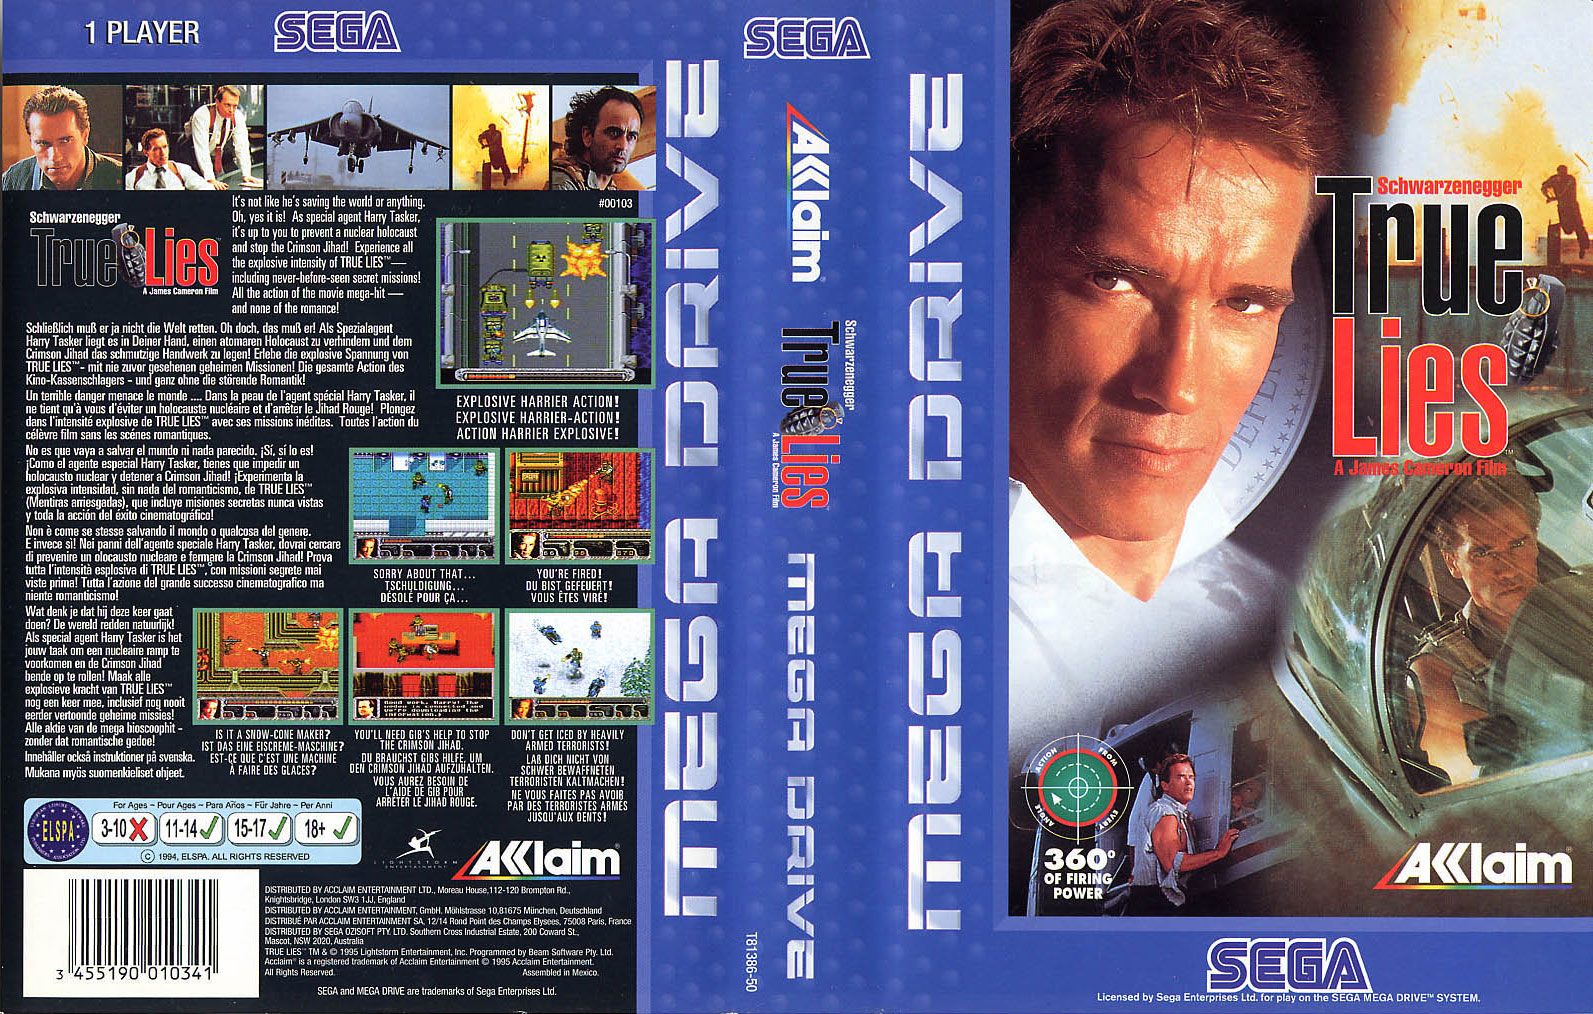 sega enterprises ltd v accolade inc This tiny smidgen of code, and its resulting message, became the bedrock of sega enterprises ltd v accolade inc, which was decided by the ninth circuit a mere month after atari games corp v.